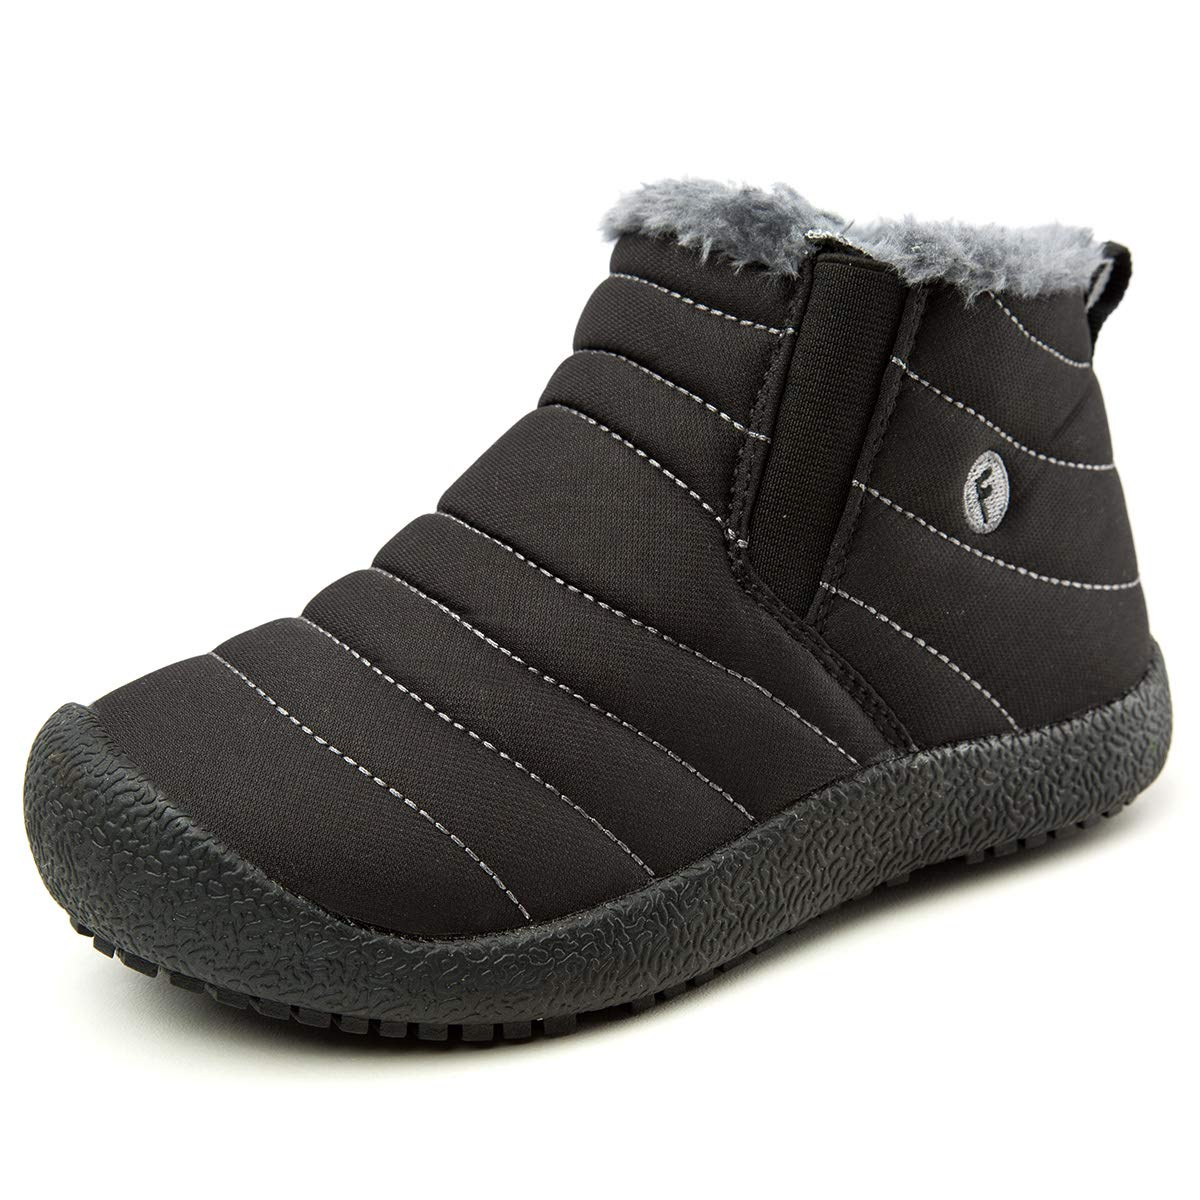 EXEBLUE Winter Snow Boots Water-Resistant for Boys Girls, Kids Ankle Booties Wool Lining